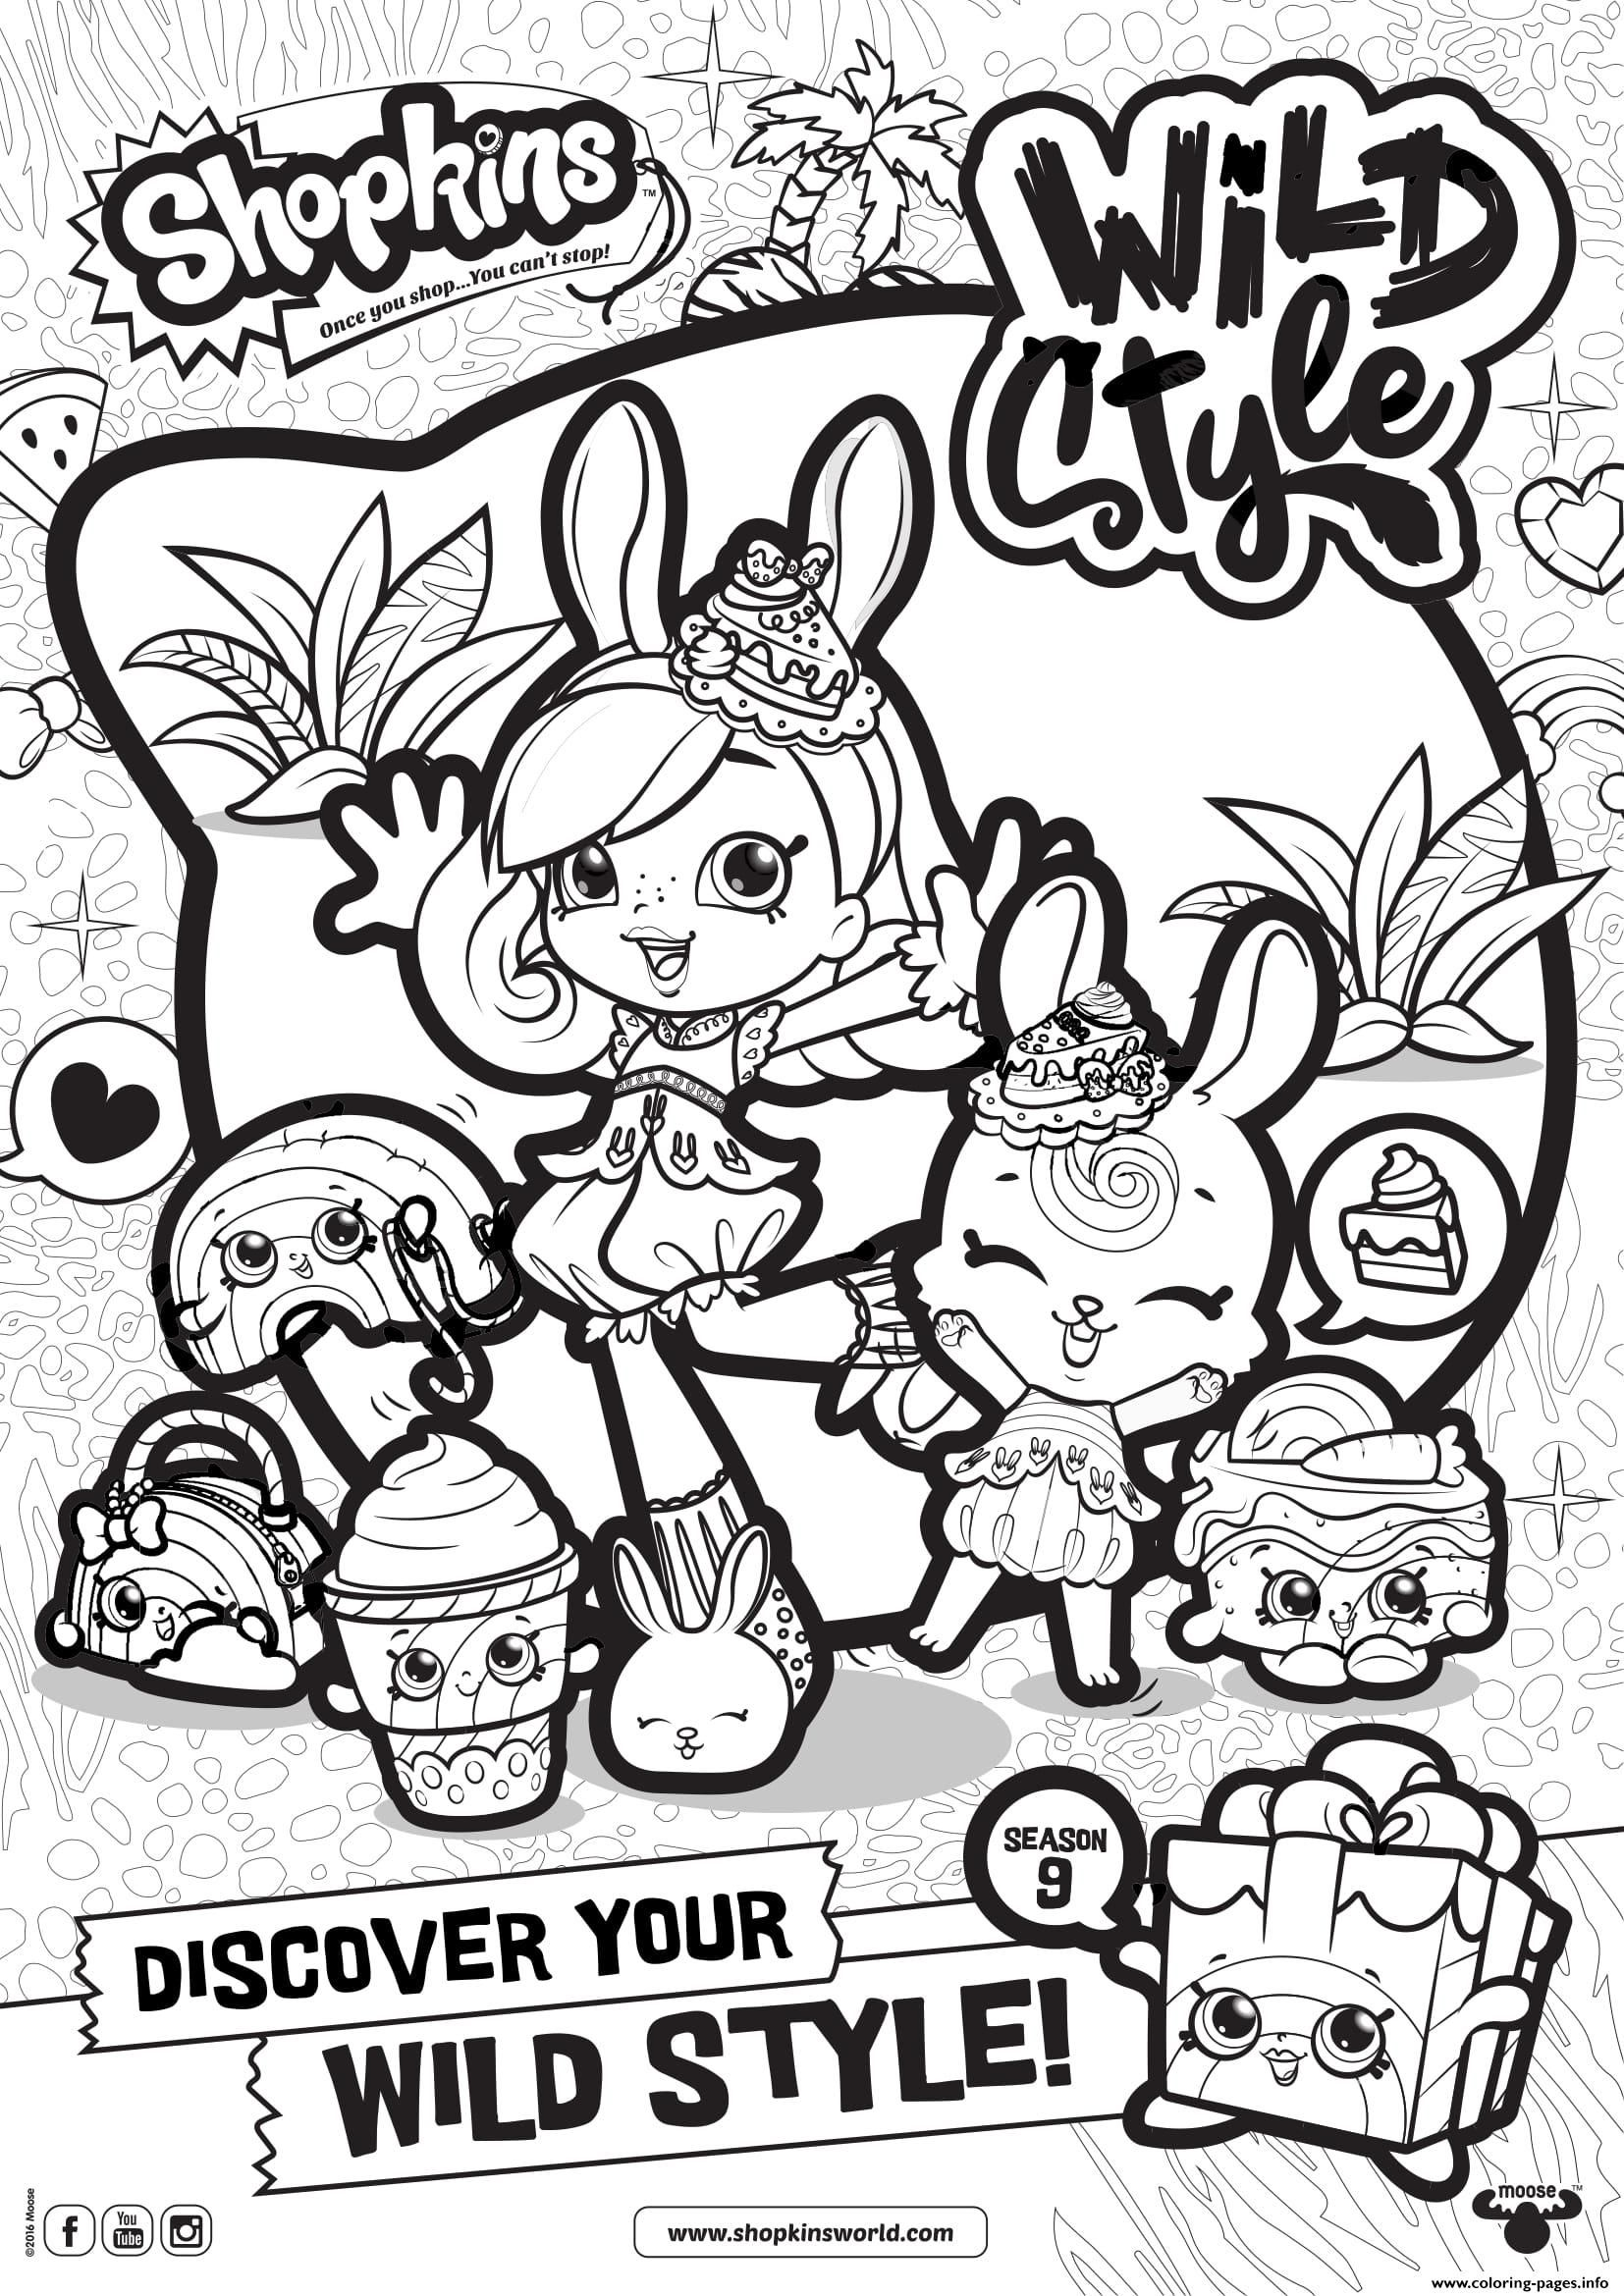 Print Shopkins Season 9 Wild Style 6 Coloring Pages